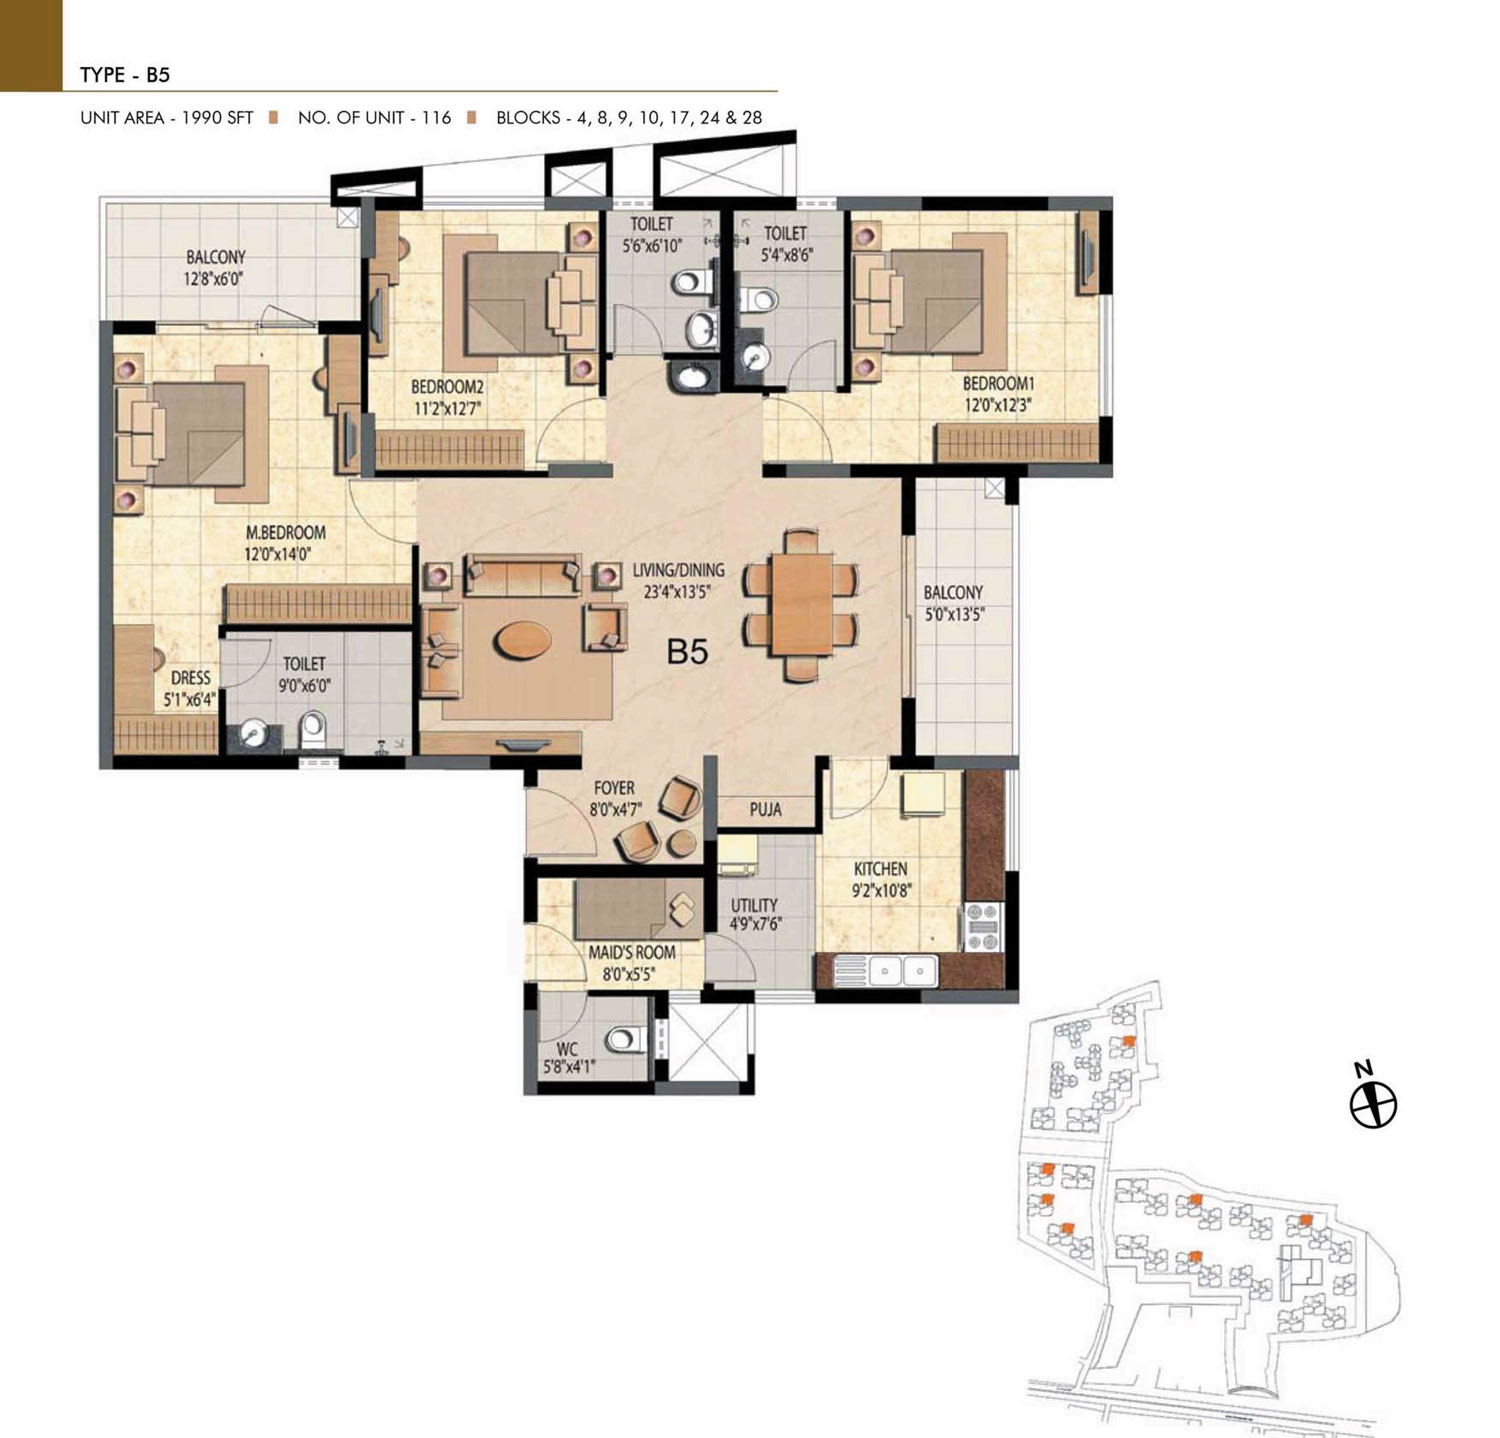 Type B5 - 3 Bed - 1990 Sq Ft